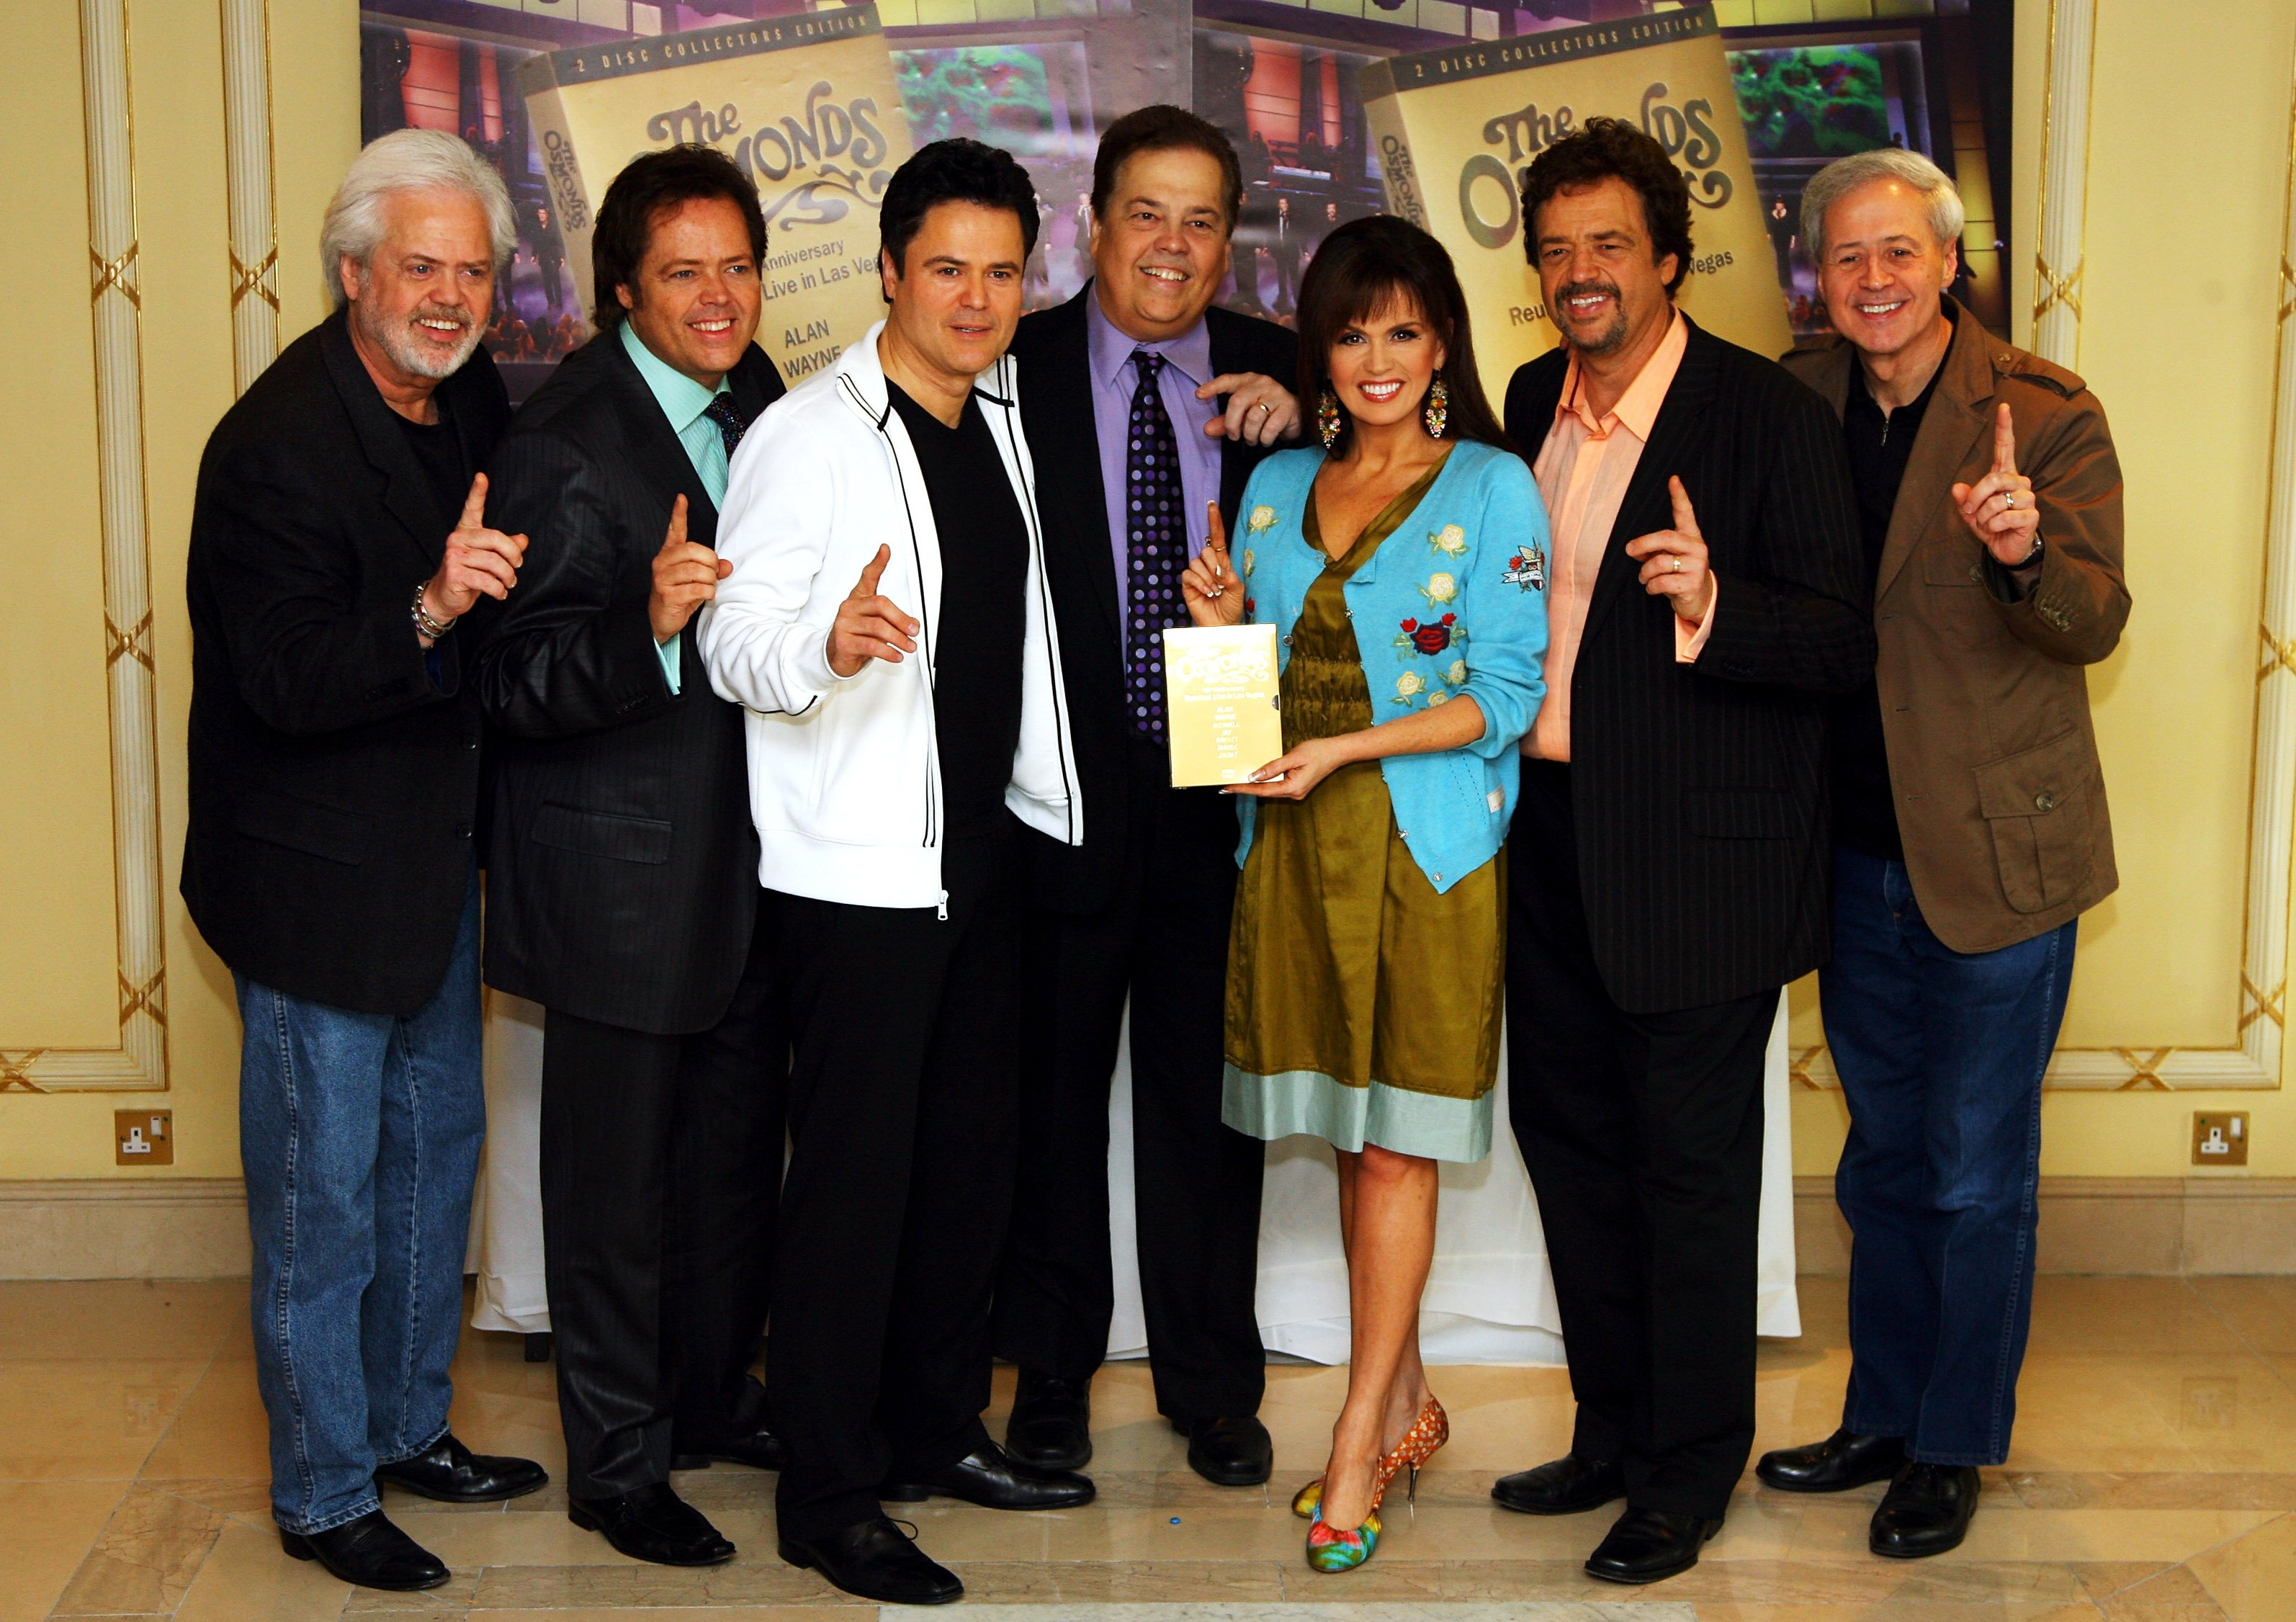 Image Credits: Getty Images / Chris Jackson | The Osmonds (L-R) Merril, Jimmy, Donny, Alan, Marie, Jay and Wayne pose for a photograph at a photocall promoting their number one DVD and 50th Anniversary Concert in Las Vegas at the Millenium Hotel on May 29, 2008 in London, England.